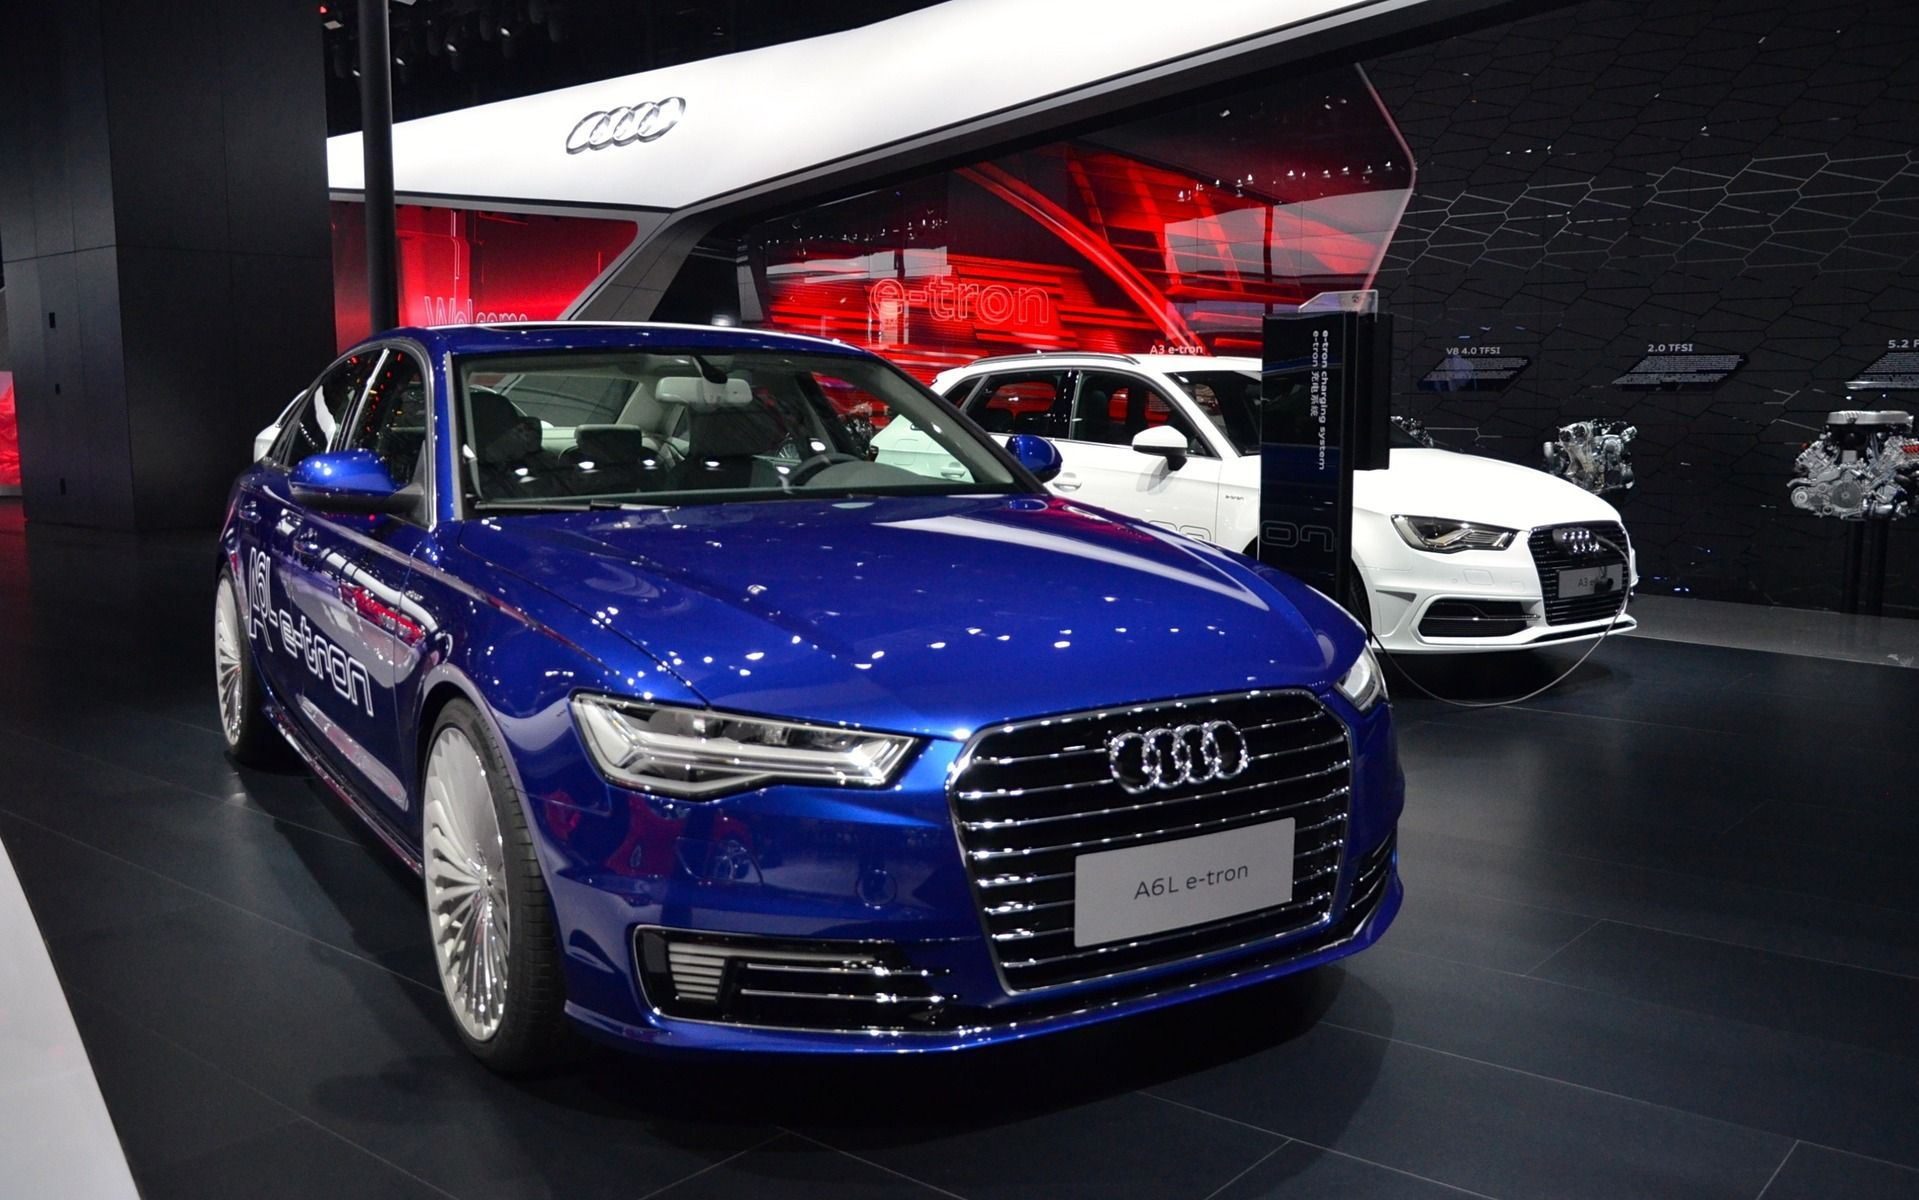 2016 audi a3 e tron rear view new and upcoming cars pinterest audi a3 audi and audi a3 sportback